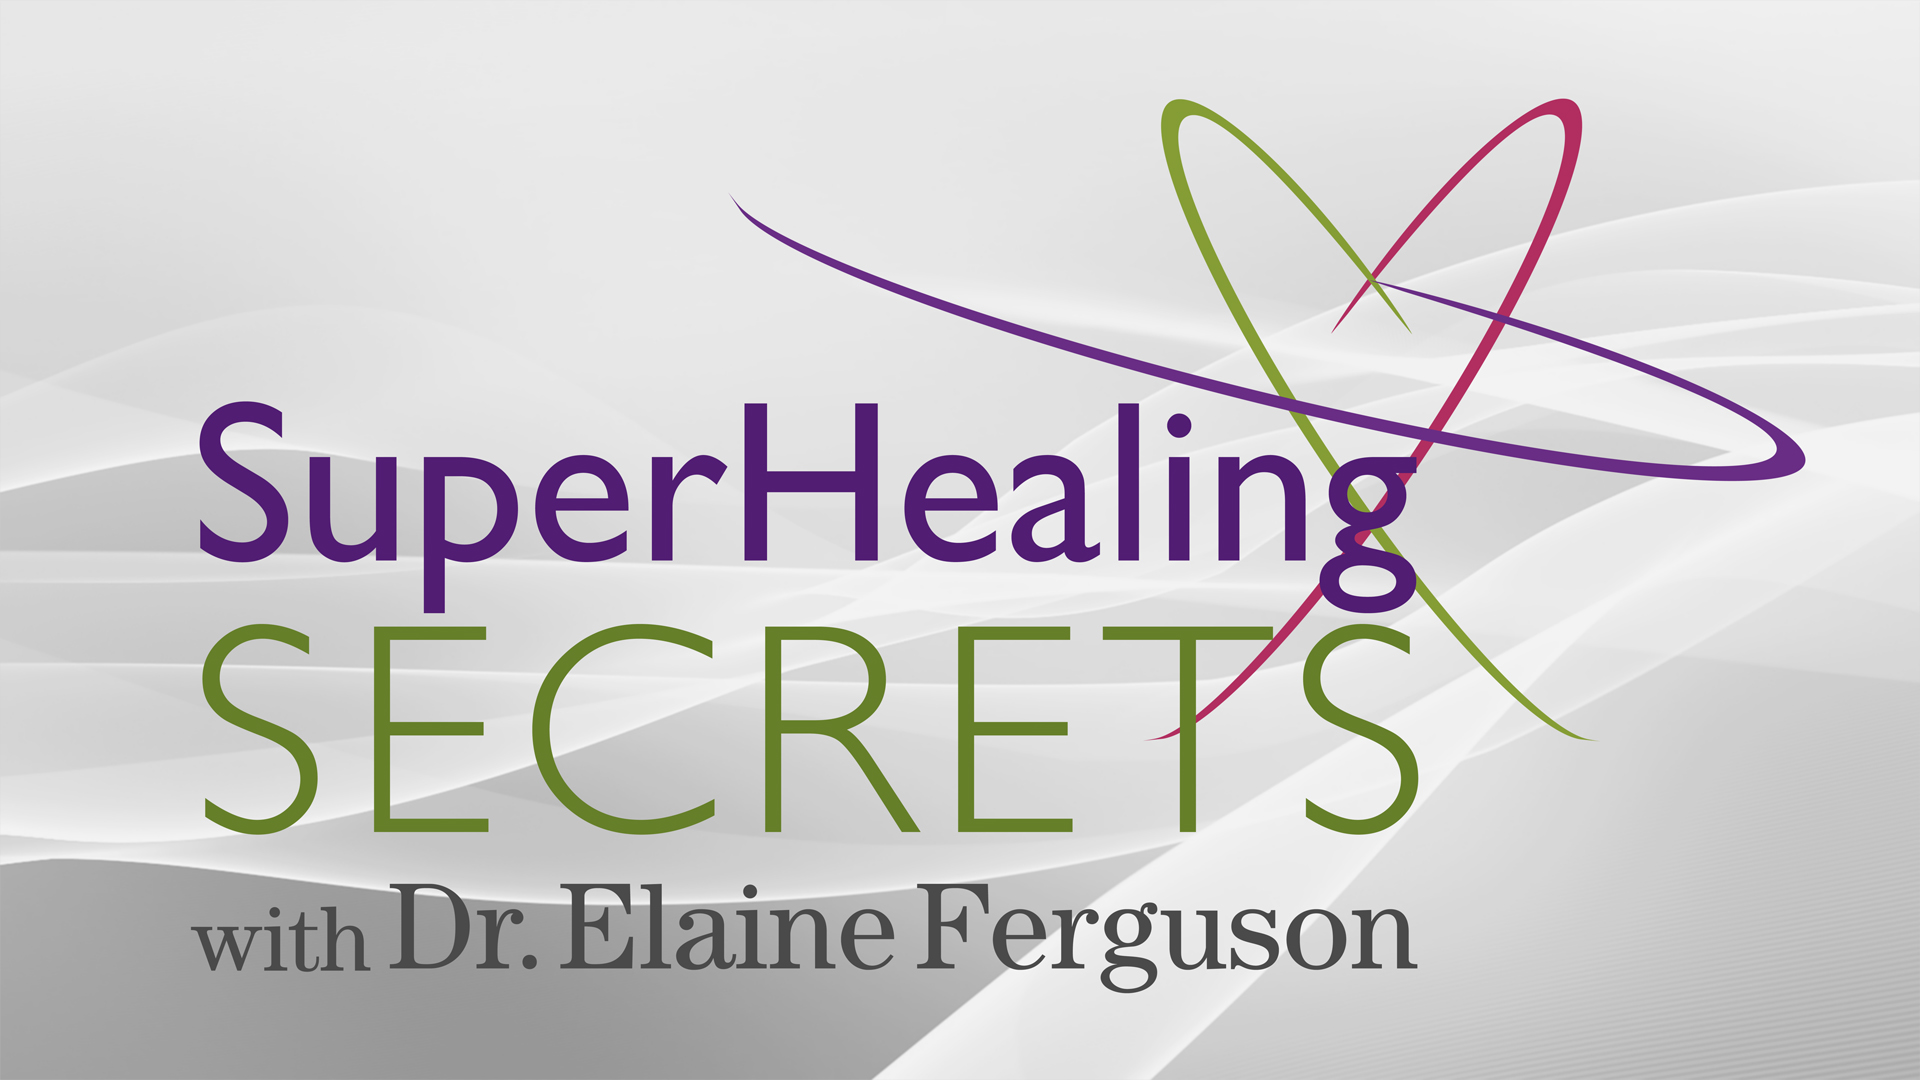 Have You Seen SuperHealing Secrets?